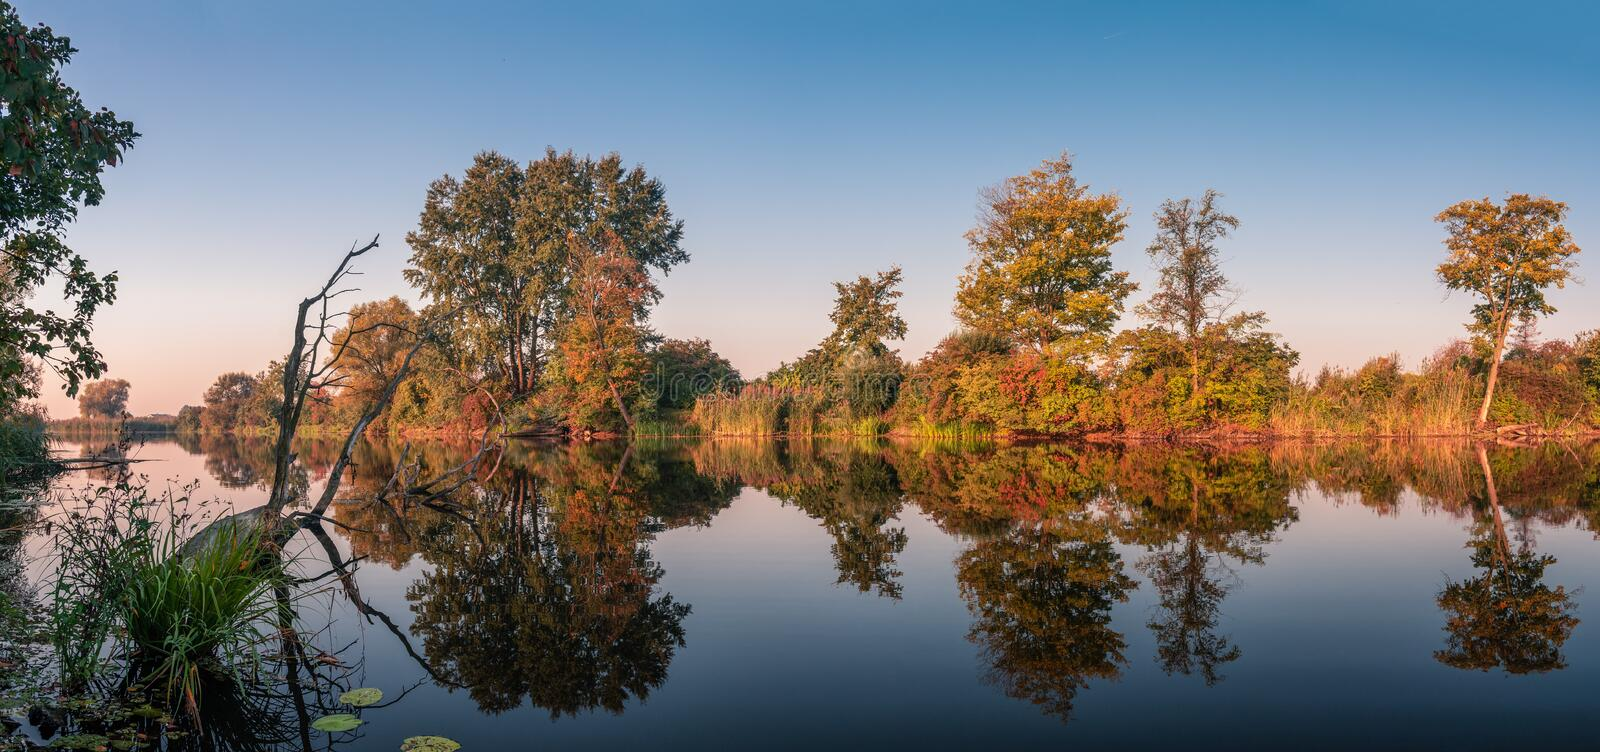 Natural lake scenery during autumn / fall season with colorful trees. Panoramic view on the natural lake early in the morning during autumn / fall season with royalty free stock photography